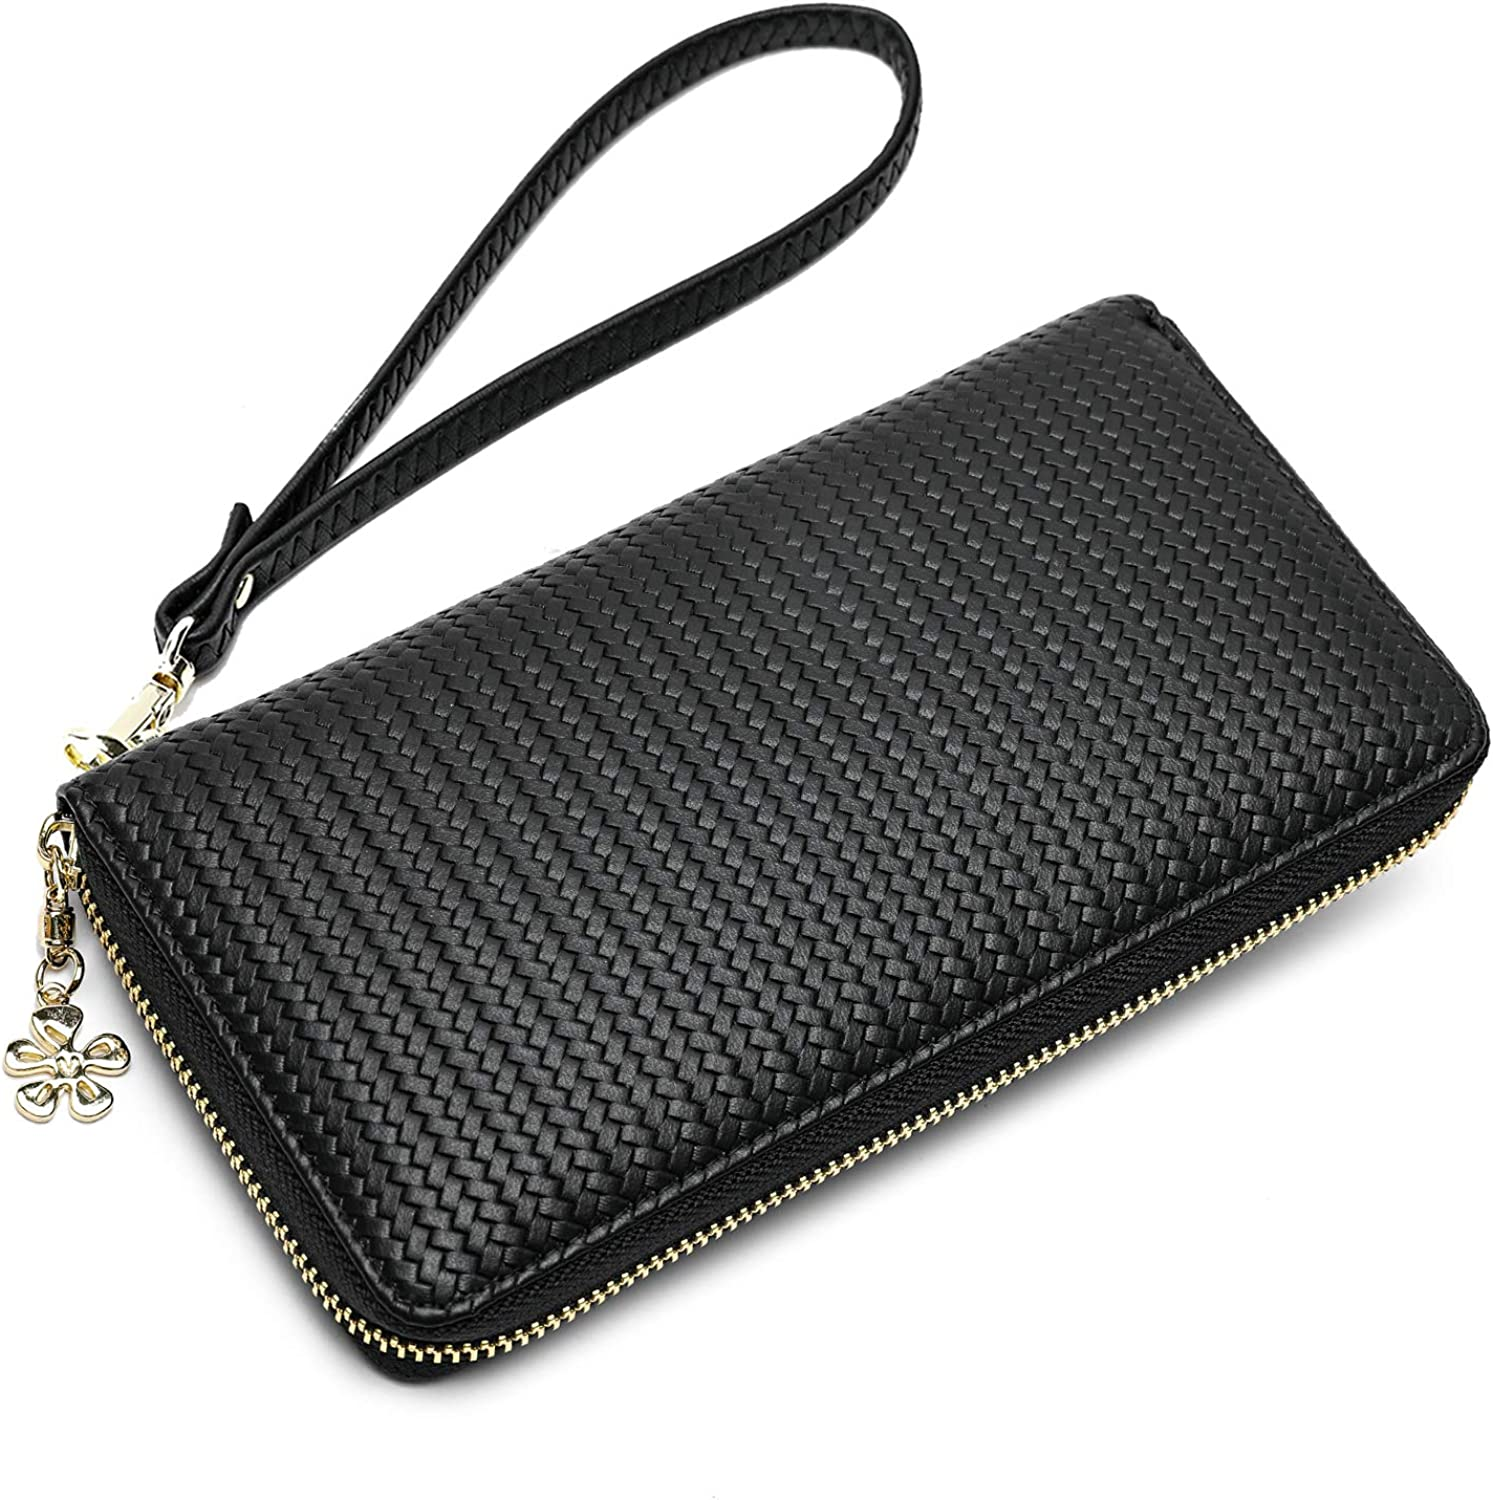 Womens Double Zipper Wallet Large Clutch Cellphone Bag with Wristlet and ID Window